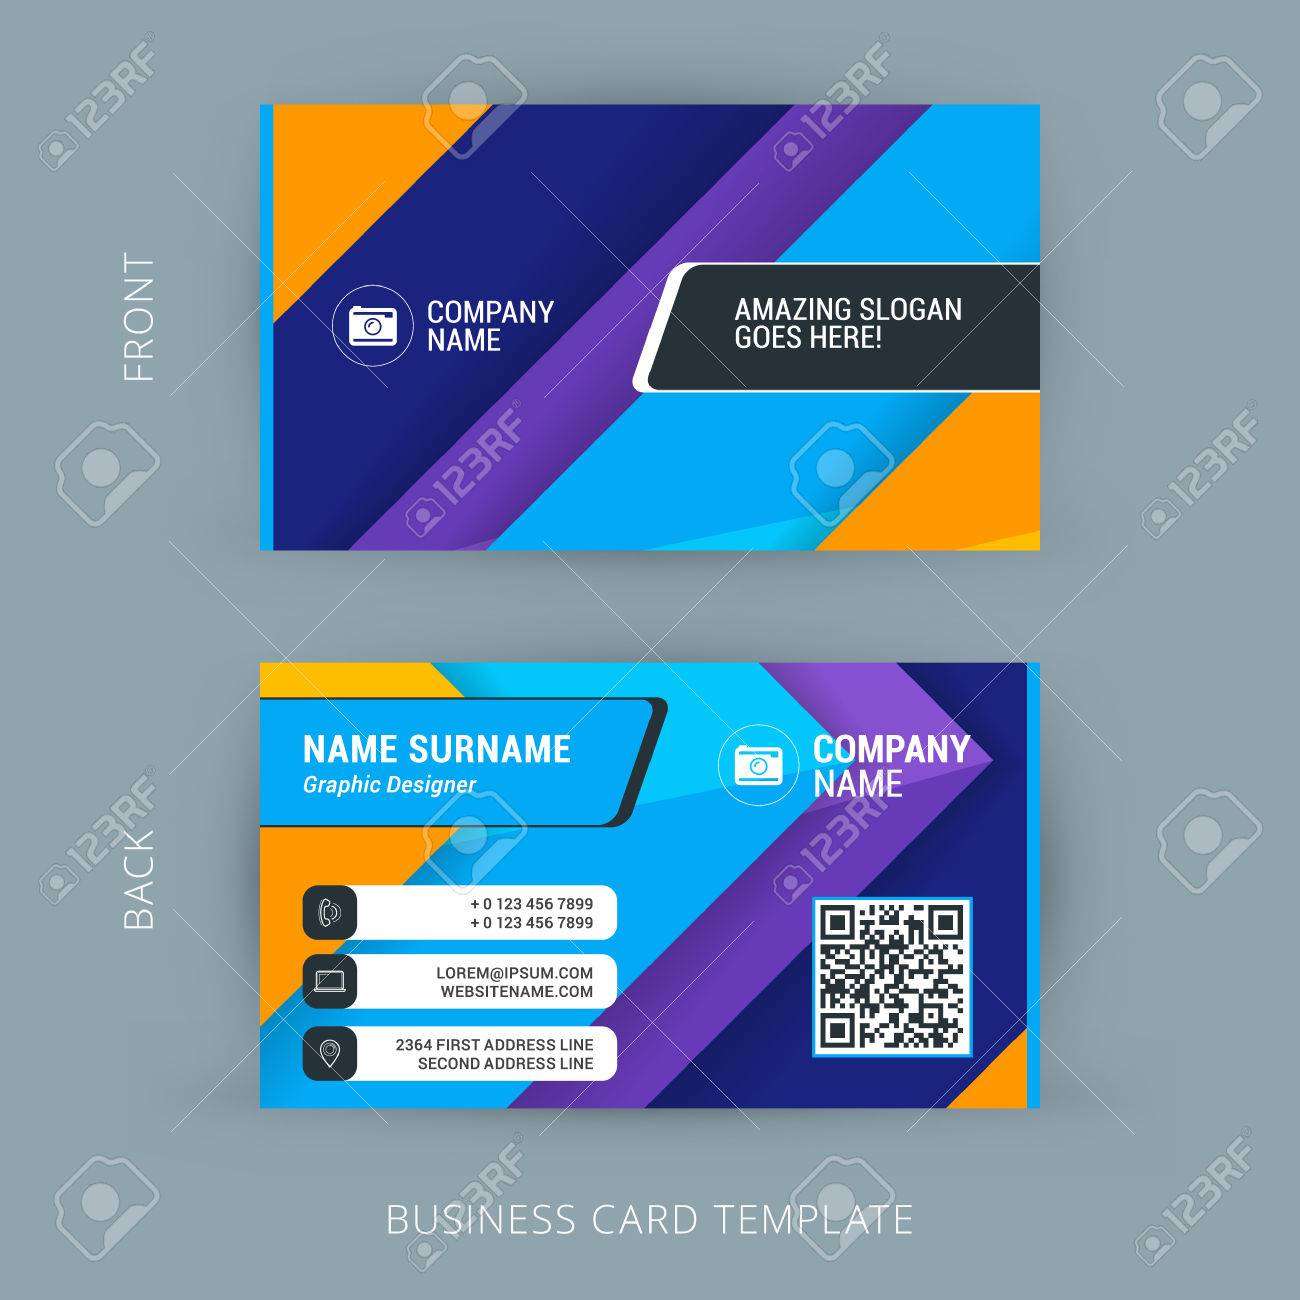 Geographics Business Cards Templates